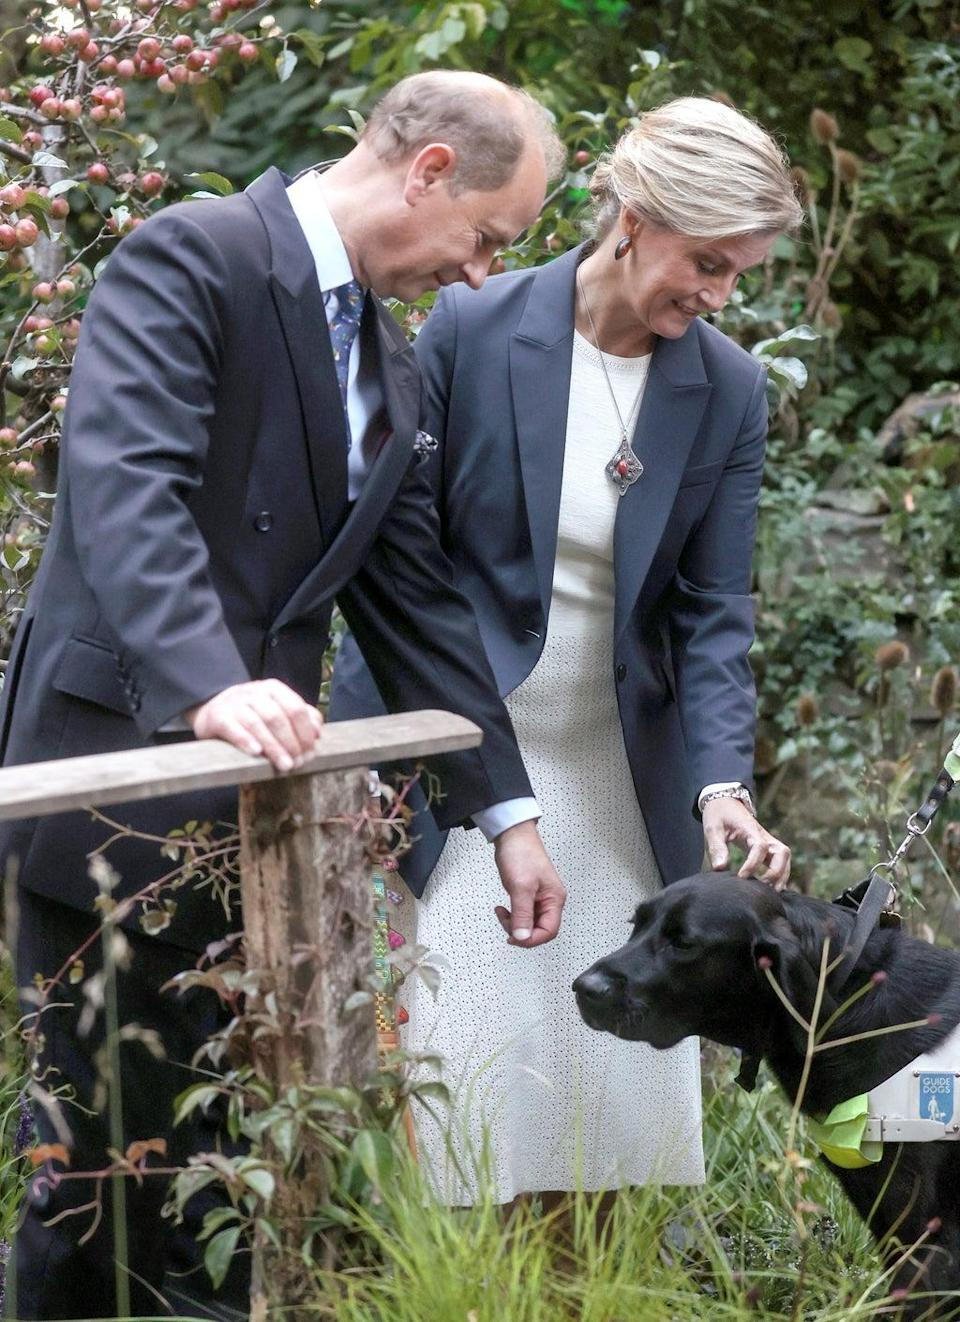 The Earl and Countess of Wessex in the garden (REUTERS)